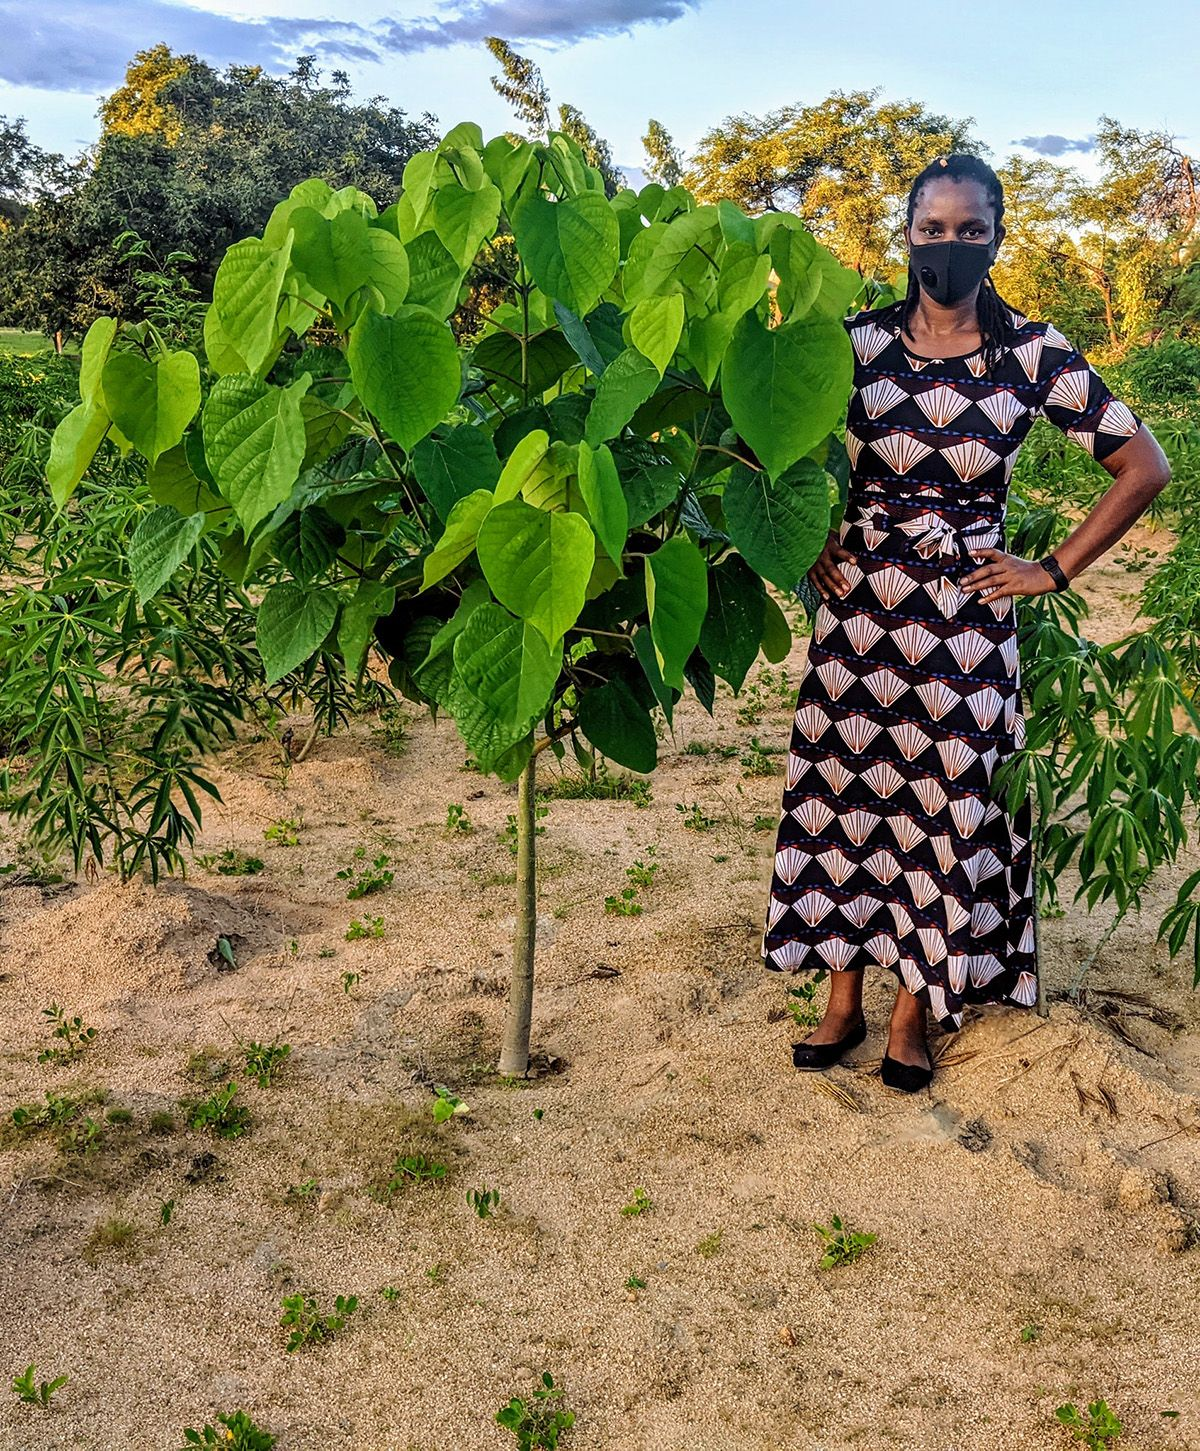 A woman stands next to a one-year-old leafy tree.